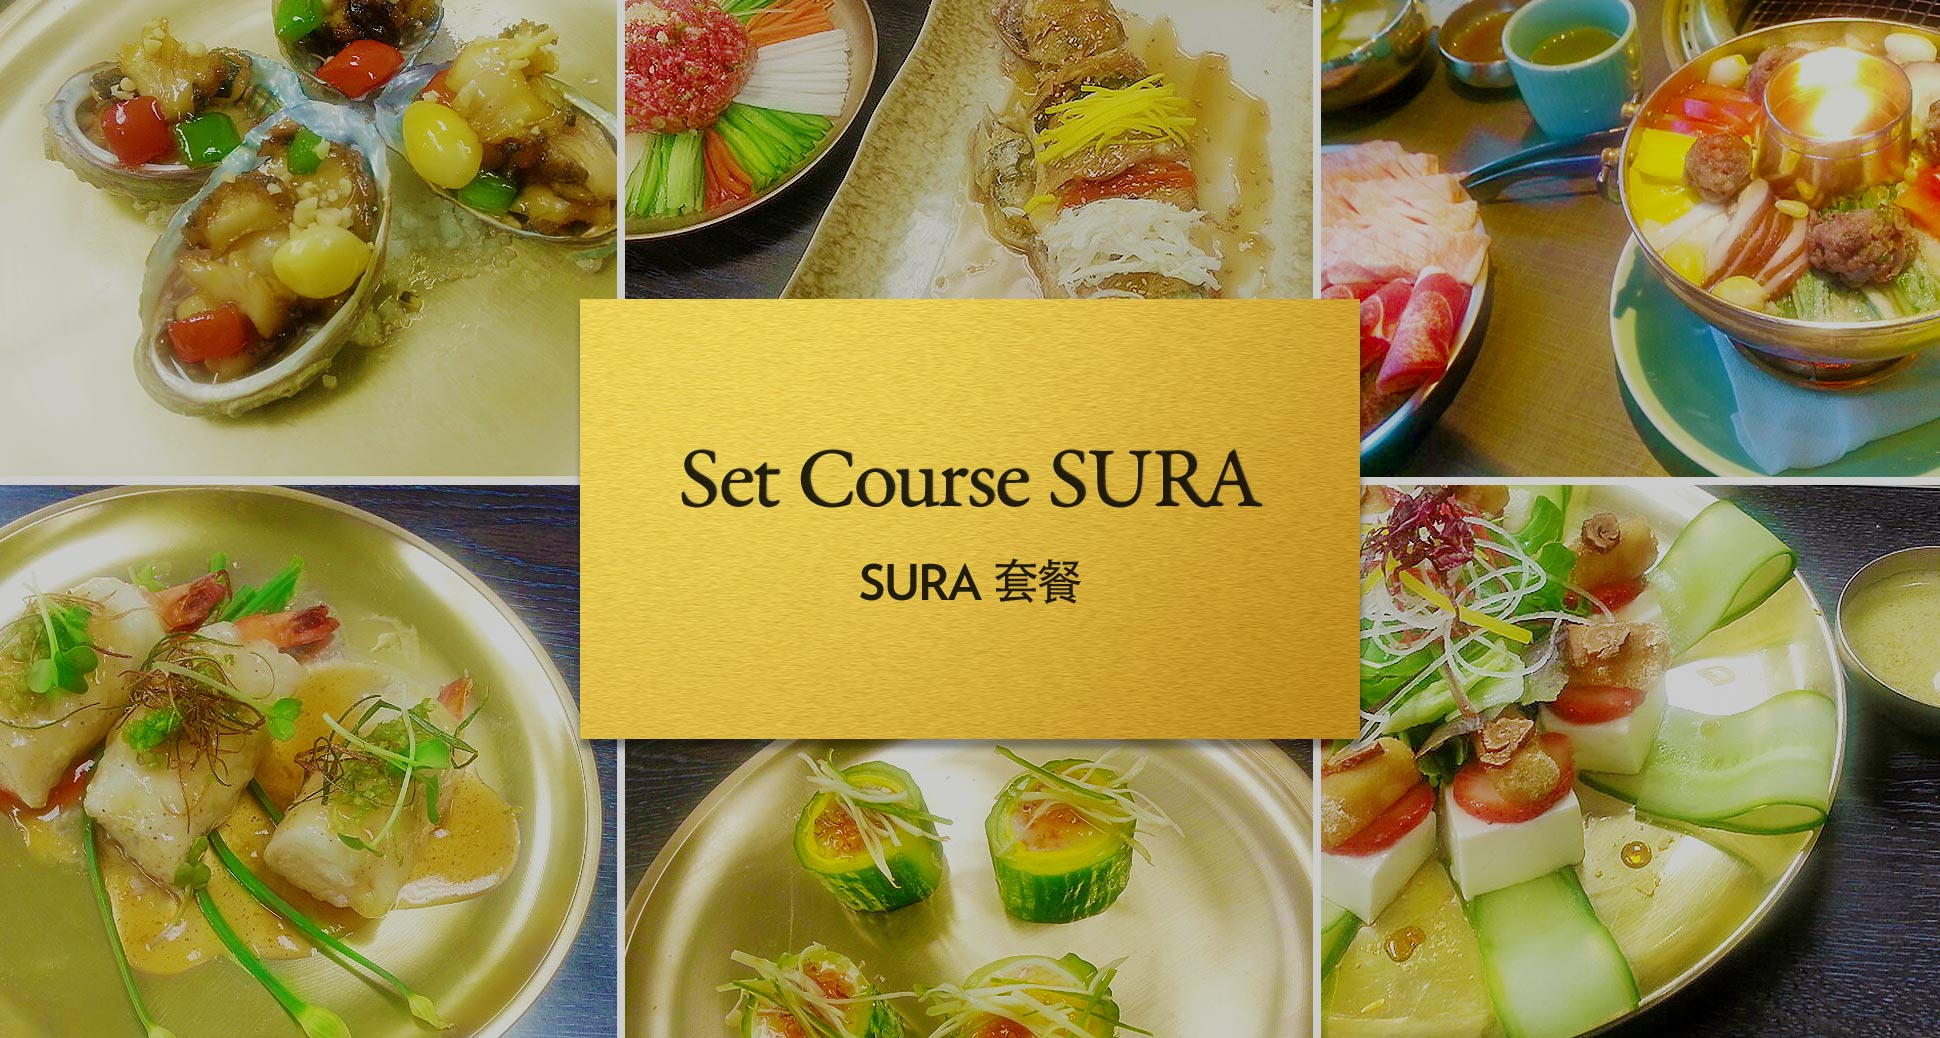 Set course SURA: truth to the core of glorious korean royal court cuisine